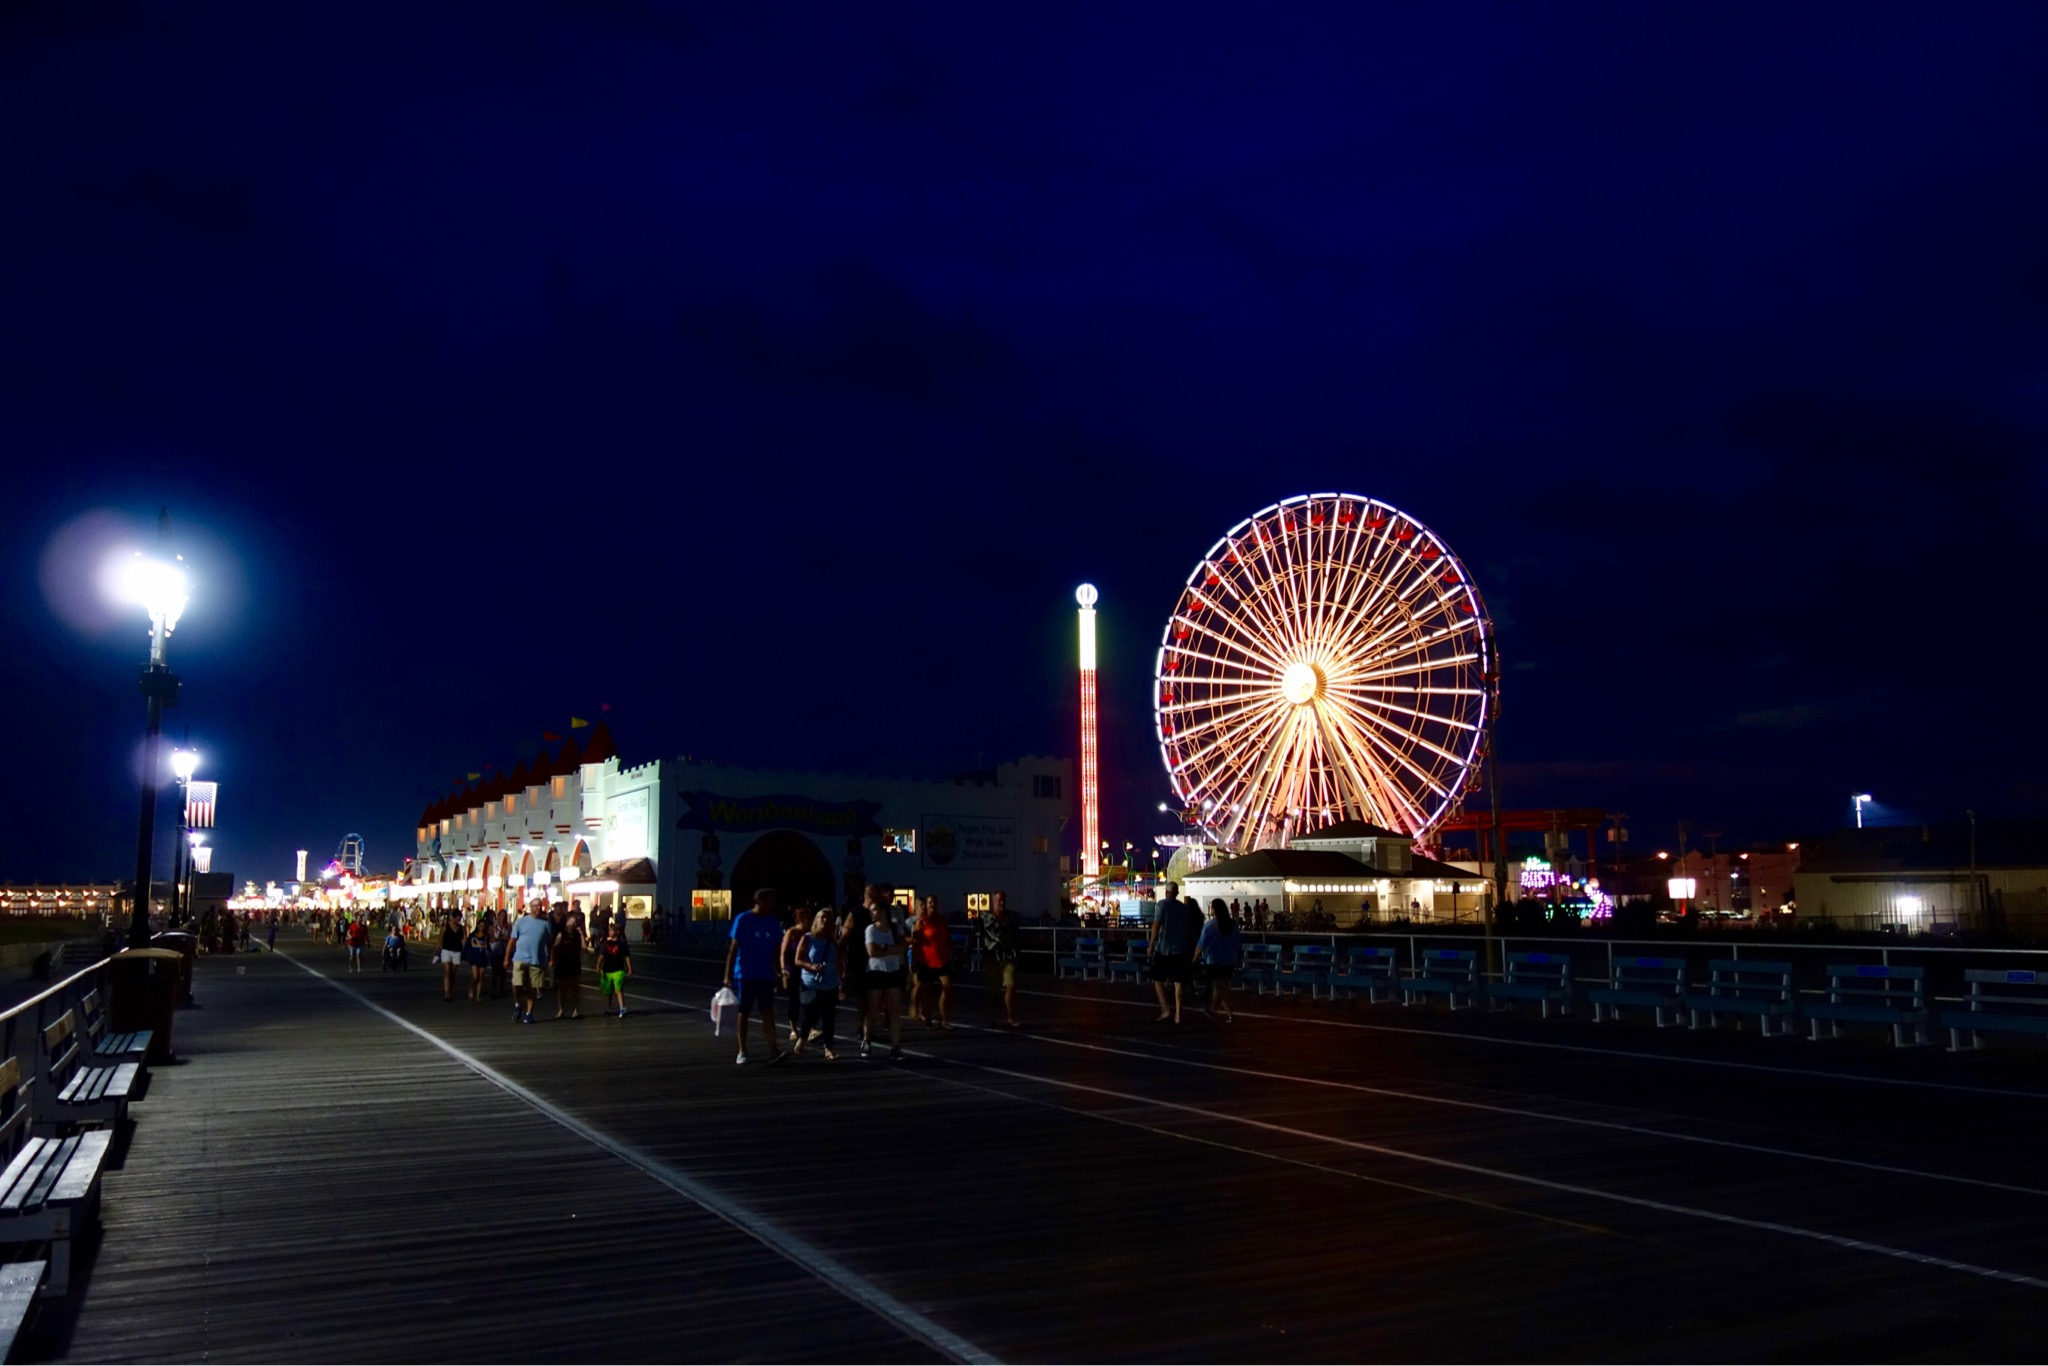 Ferris wheel lit up at Ocean City and people walking along Promenade